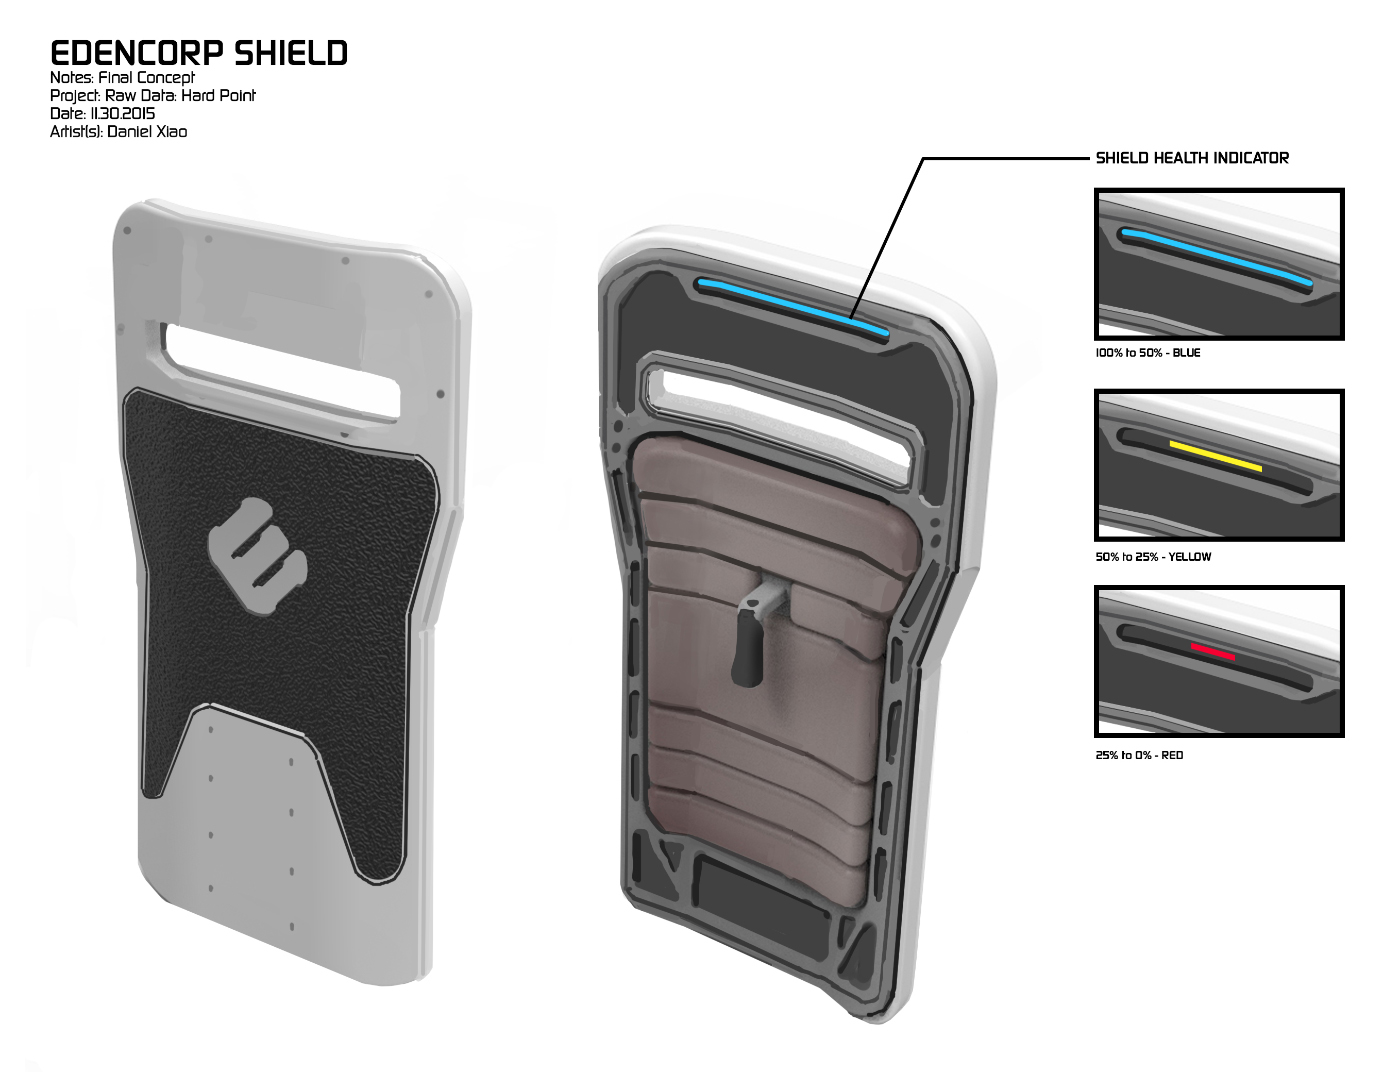 A concept for a destructible riot shield that never made it into the game. The colored indicator allowed players to keep an eye on remaining shield health while in use.